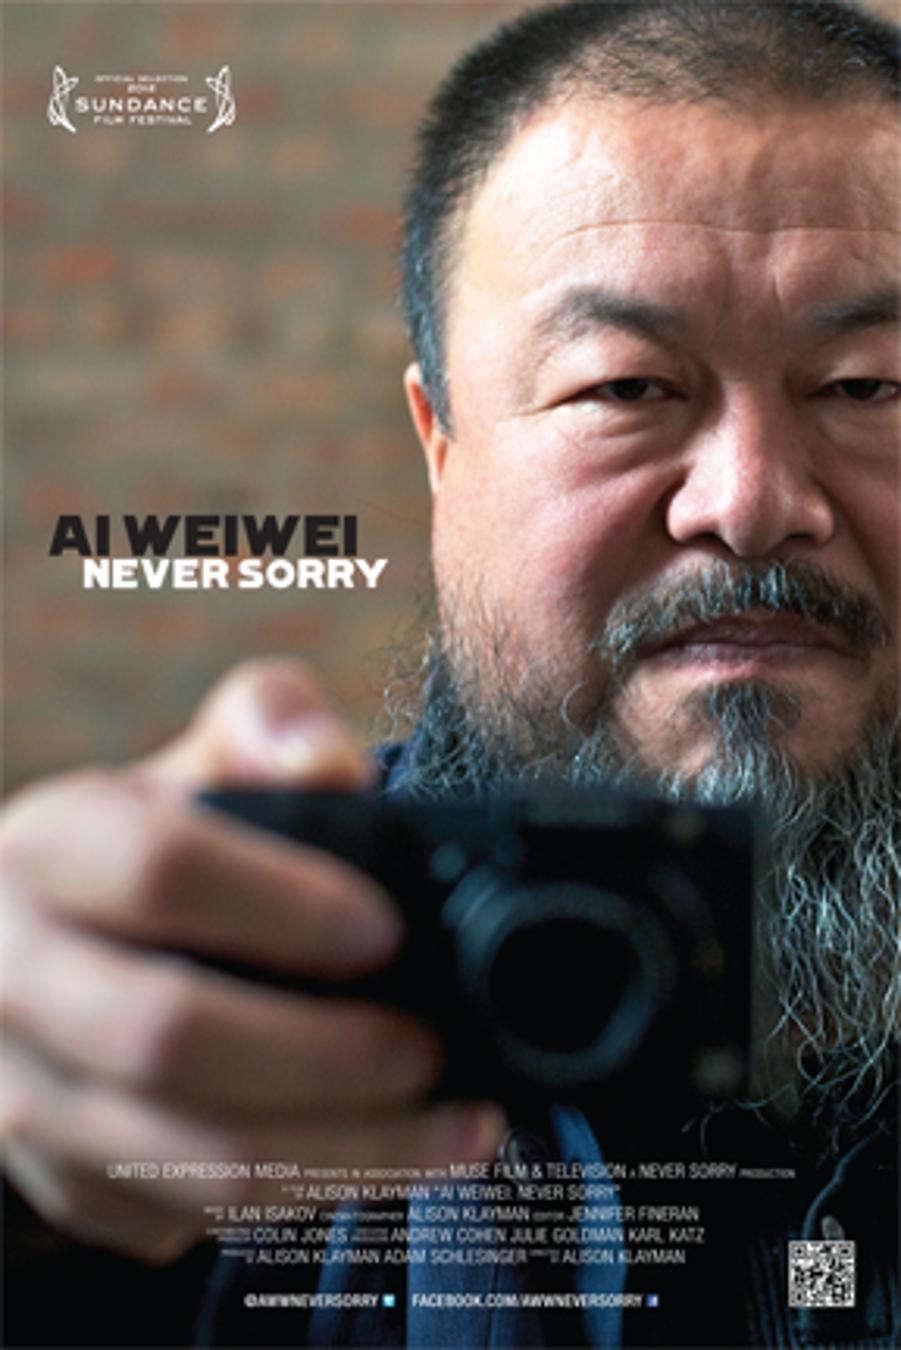 Invitation: Ai Weiwei: Never Sorry Screening With English Subtitles, Atrium Film&Theatre Budapest